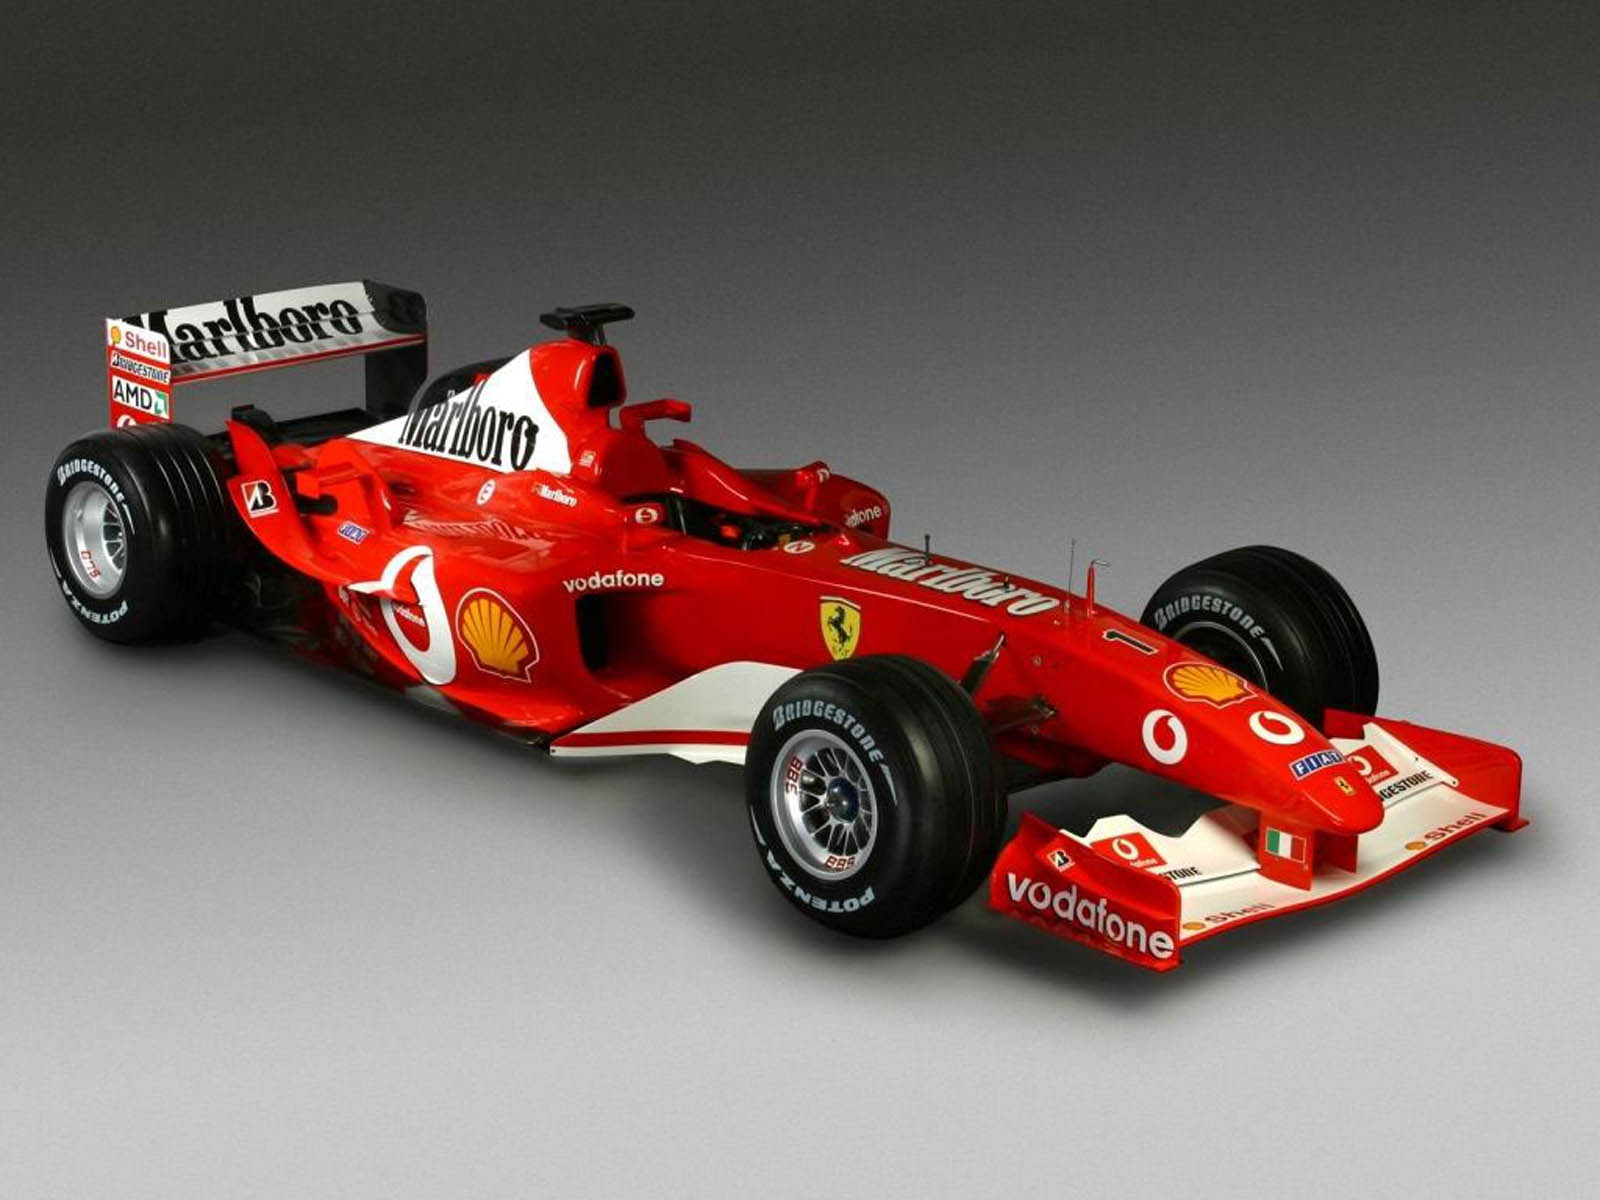 Wallpapers Formula 1 Cars Wallpapers